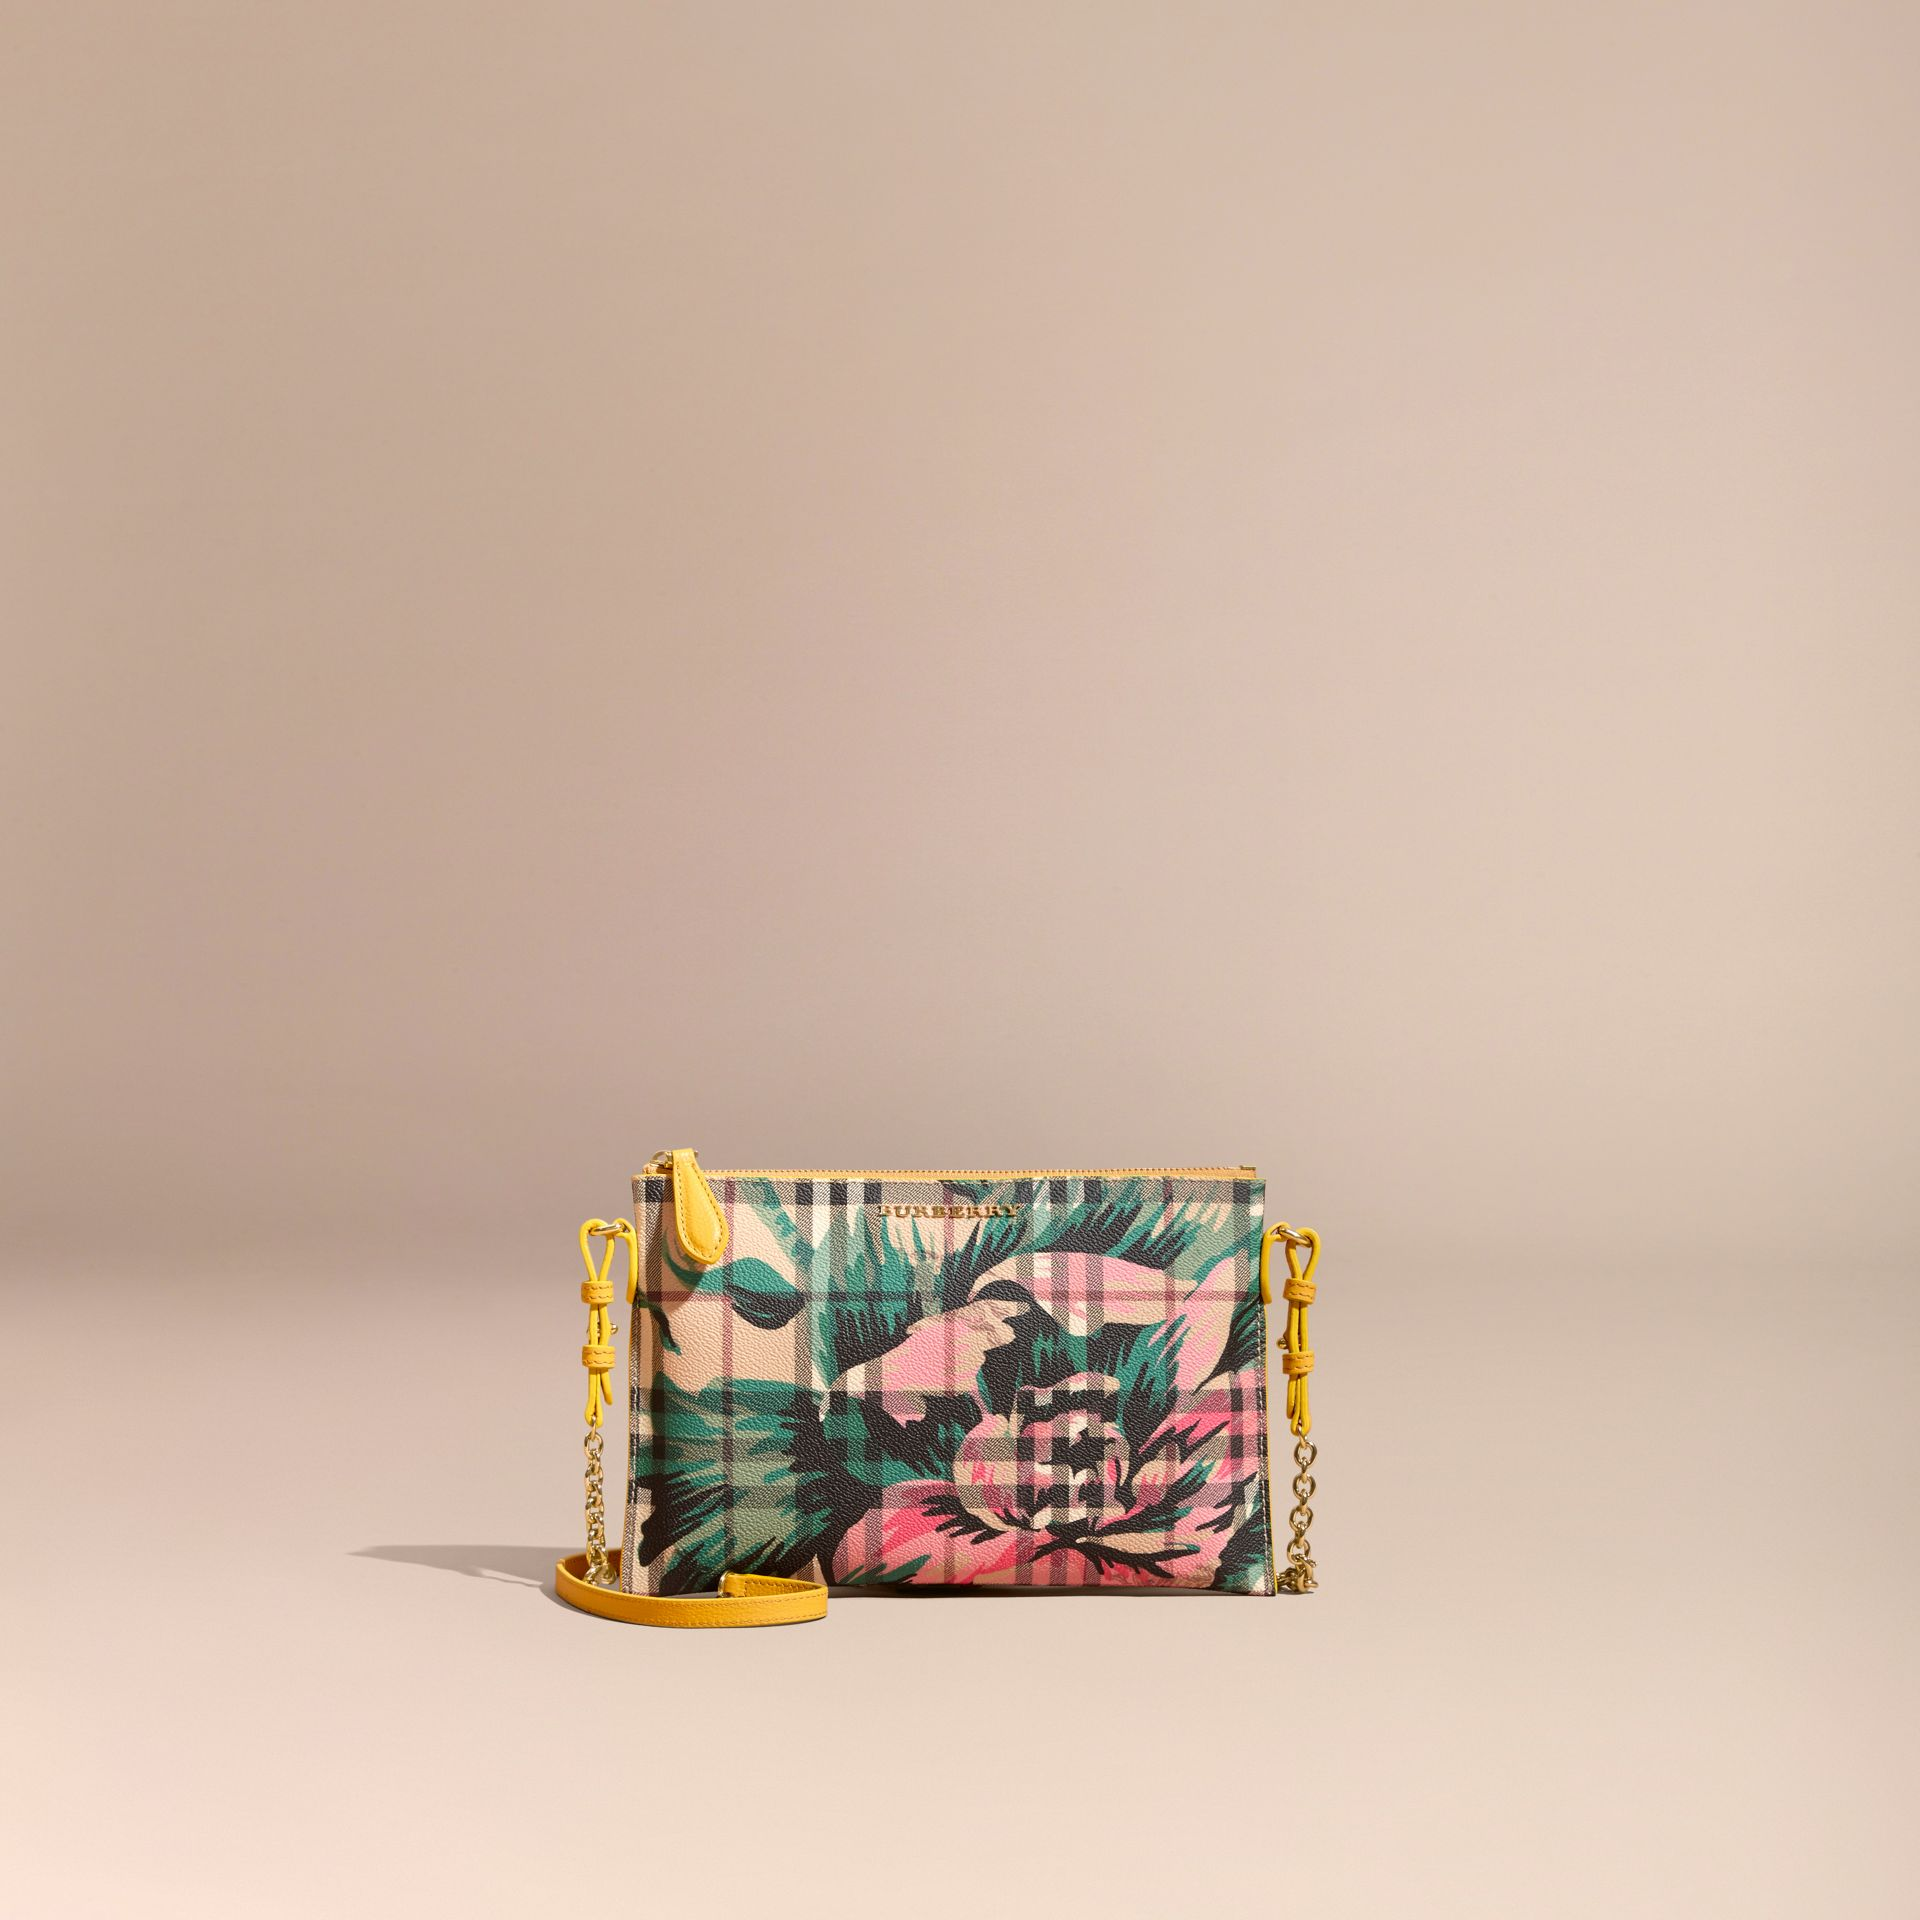 Peony Rose Print Haymarket Check and Leather Clutch Bag in Larch Yellow/emerald Green - gallery image 9